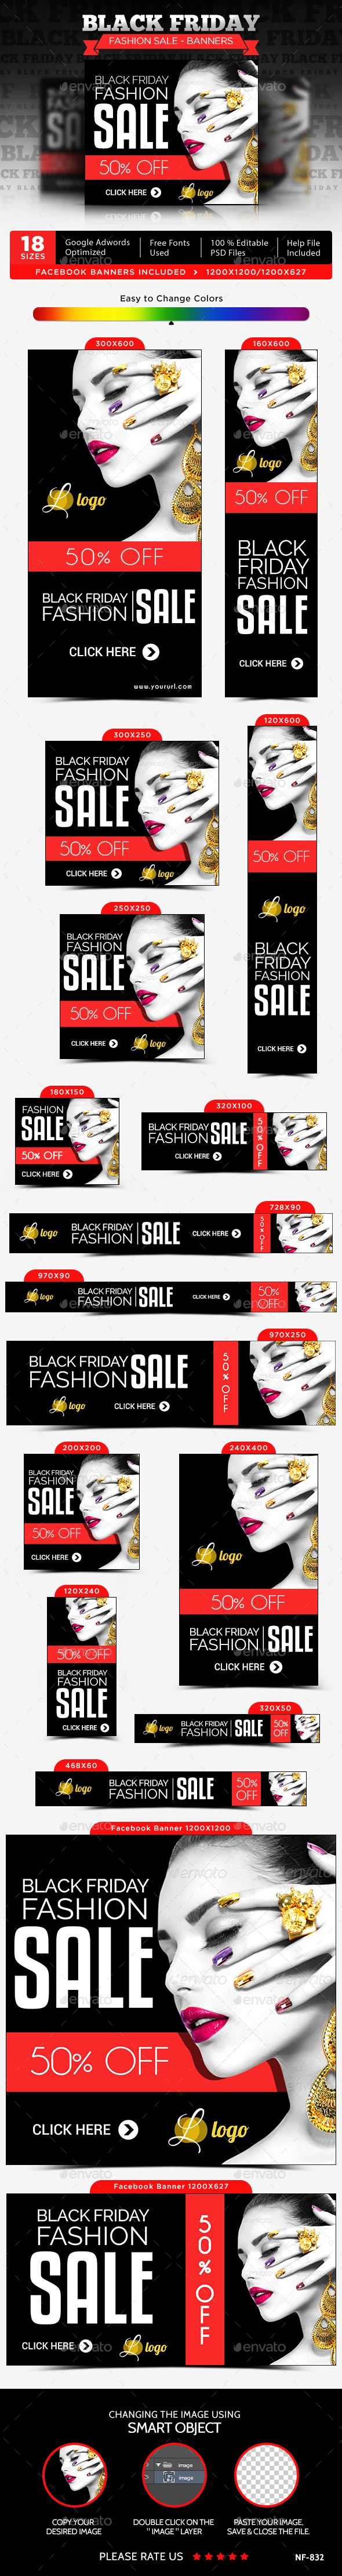 Black Friday Fashion Sale Web Banners Template PSD #design #ads Download: http://graphicriver.net/item/black-friday-fashion-sale-banners/13737641?ref=ksioks